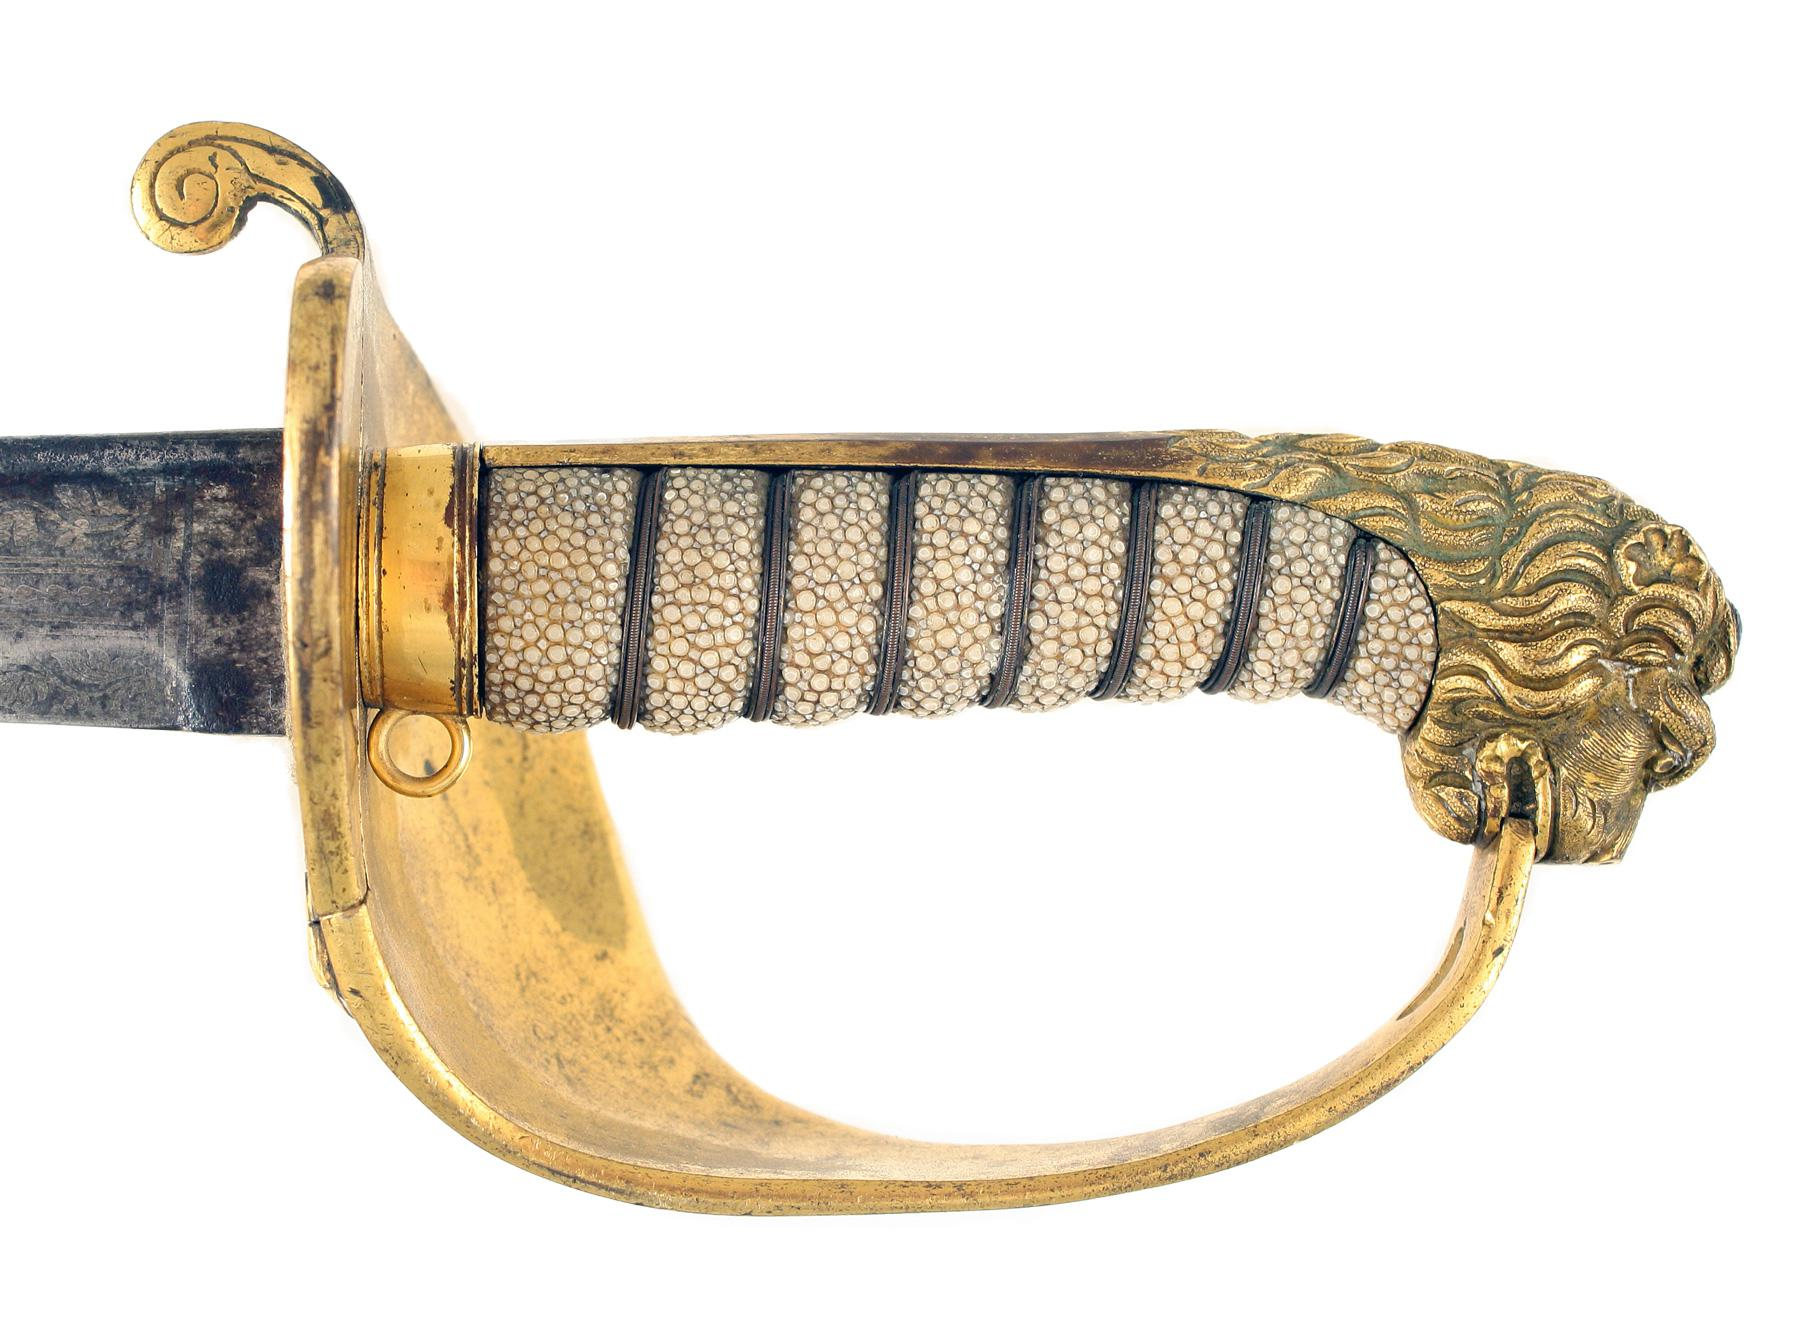 A Naval Pipe-Back Sword